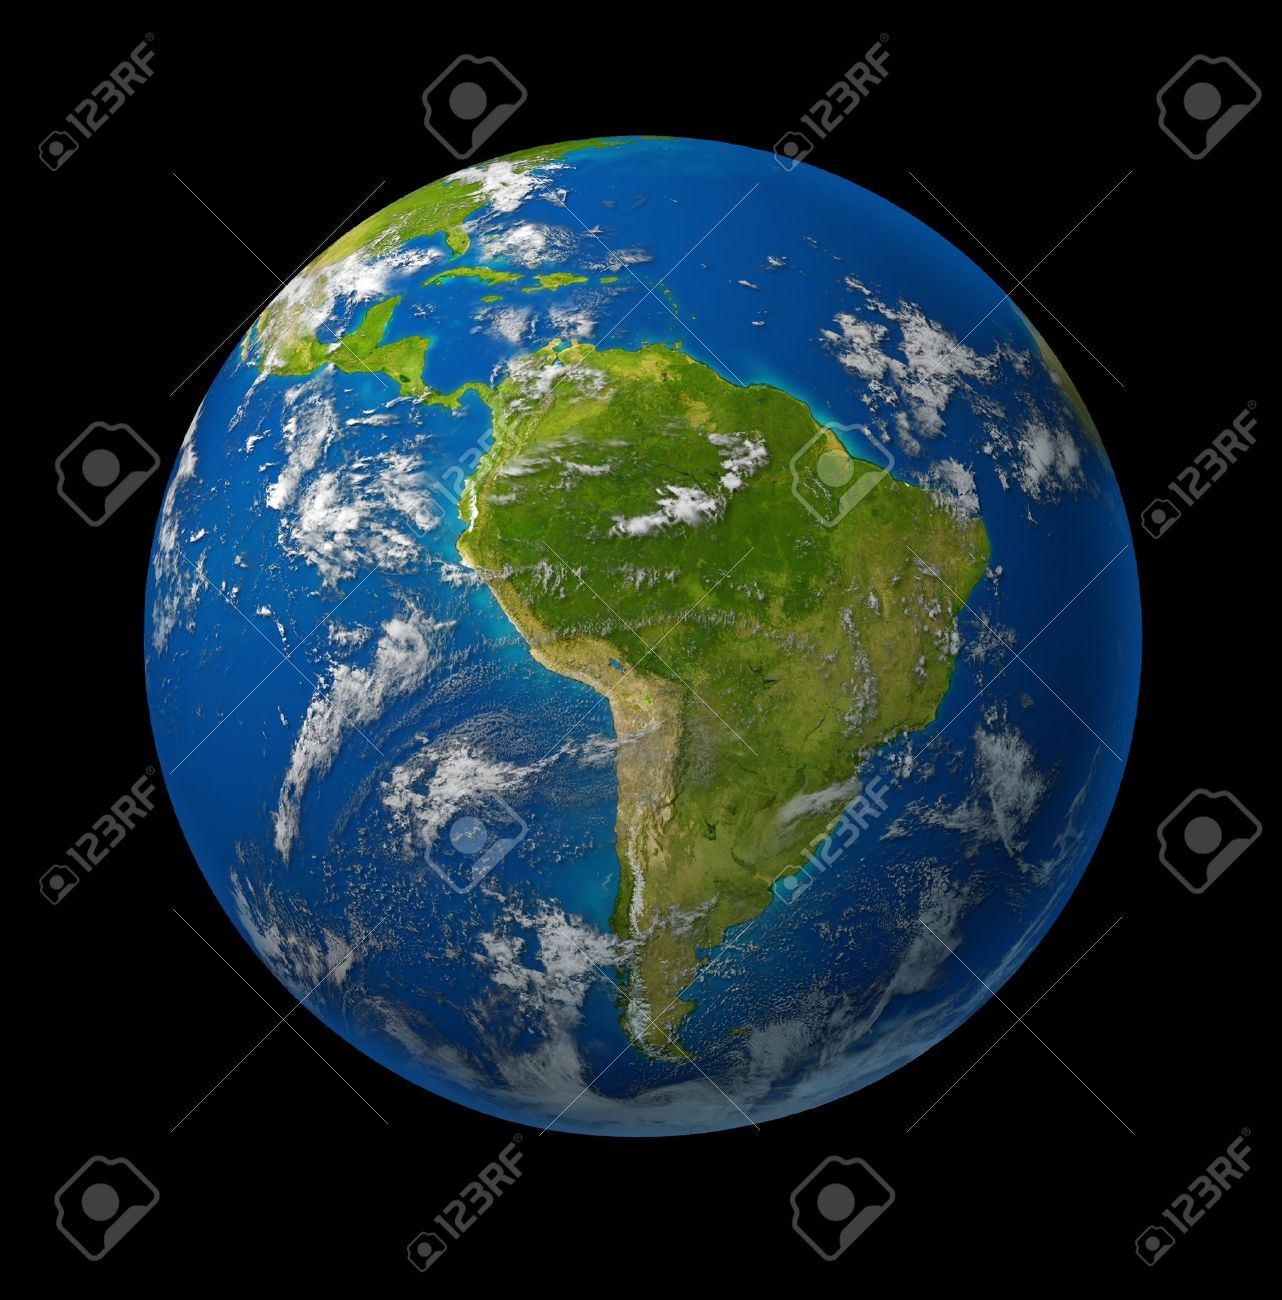 South America earth globe planet on black space background featuring america and latin american countries surrounded by blue ocean and clouds. Stock Photo - 10892164